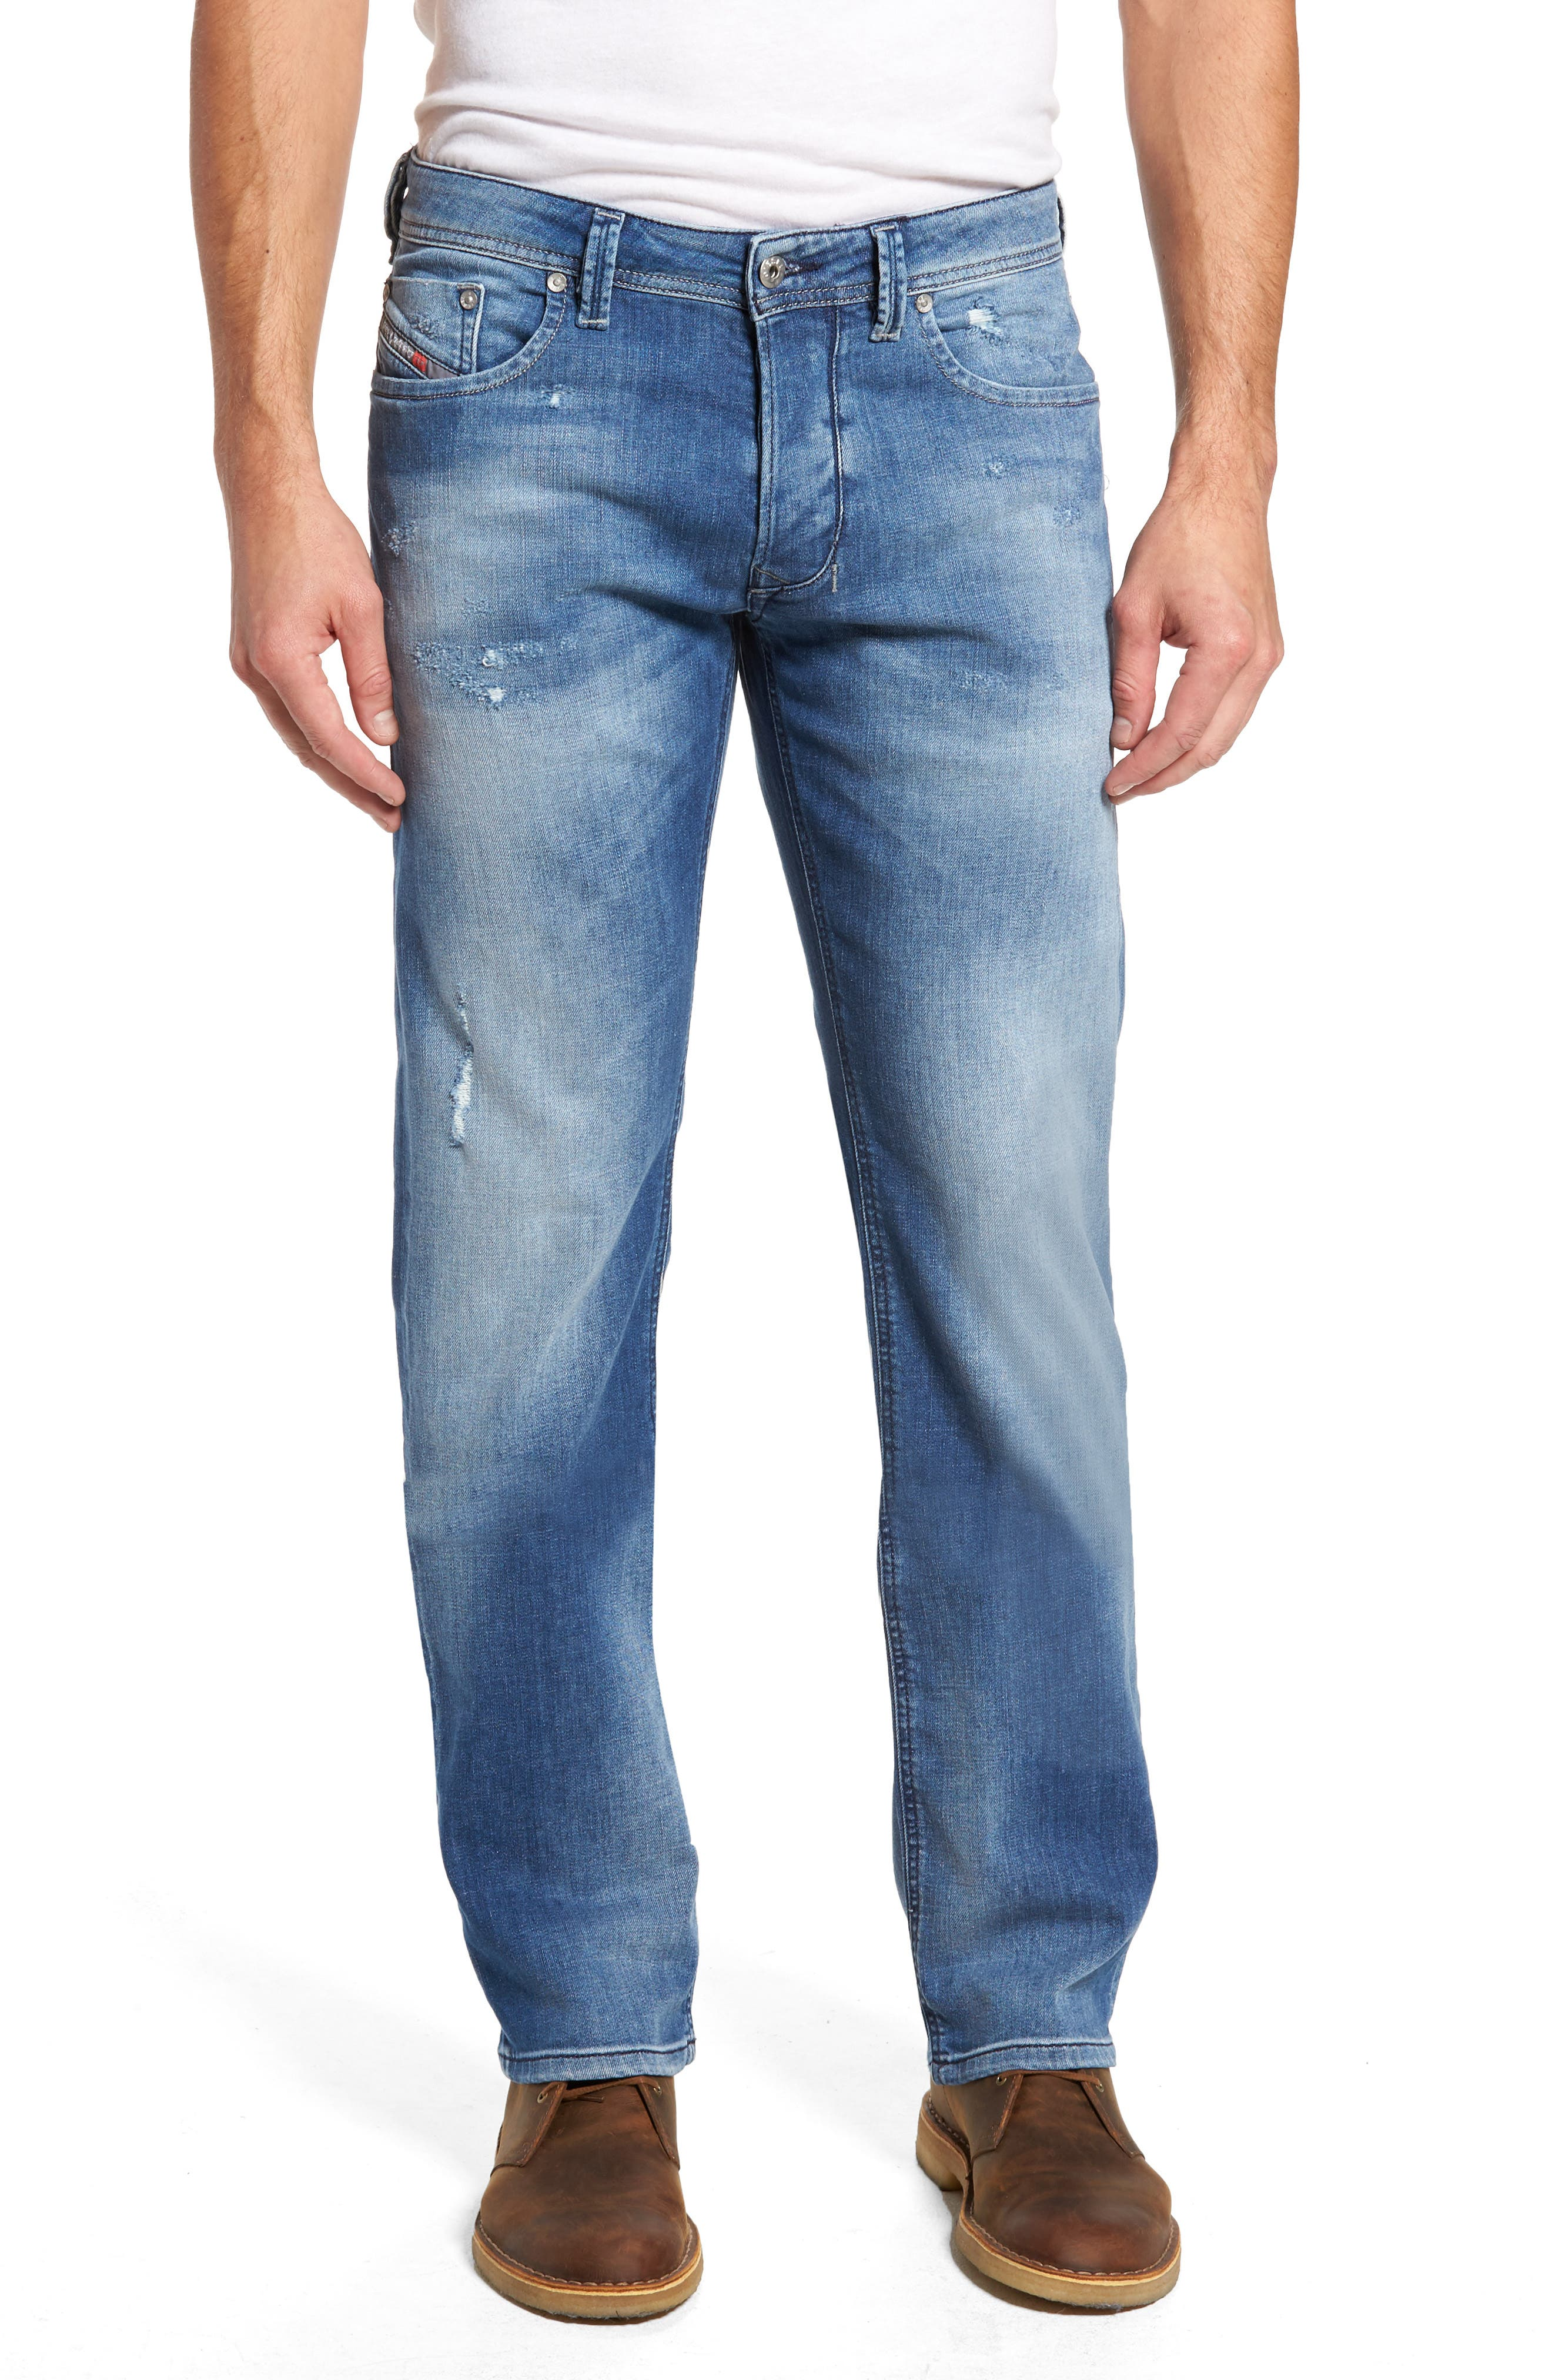 Larkee Relaxed Fit Jeans,                         Main,                         color,